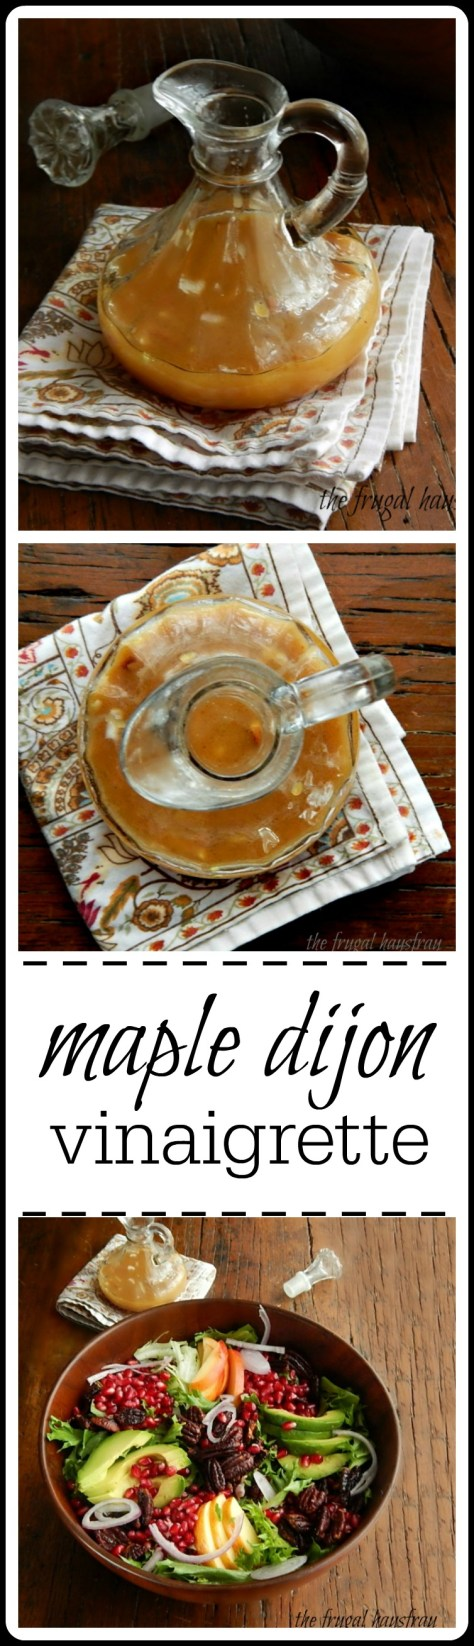 "Maple Dijon Vinaigrette: This is sublime - it doesn't really taste ""maplely"" but that maple syrup gives it such a nice back flavor."